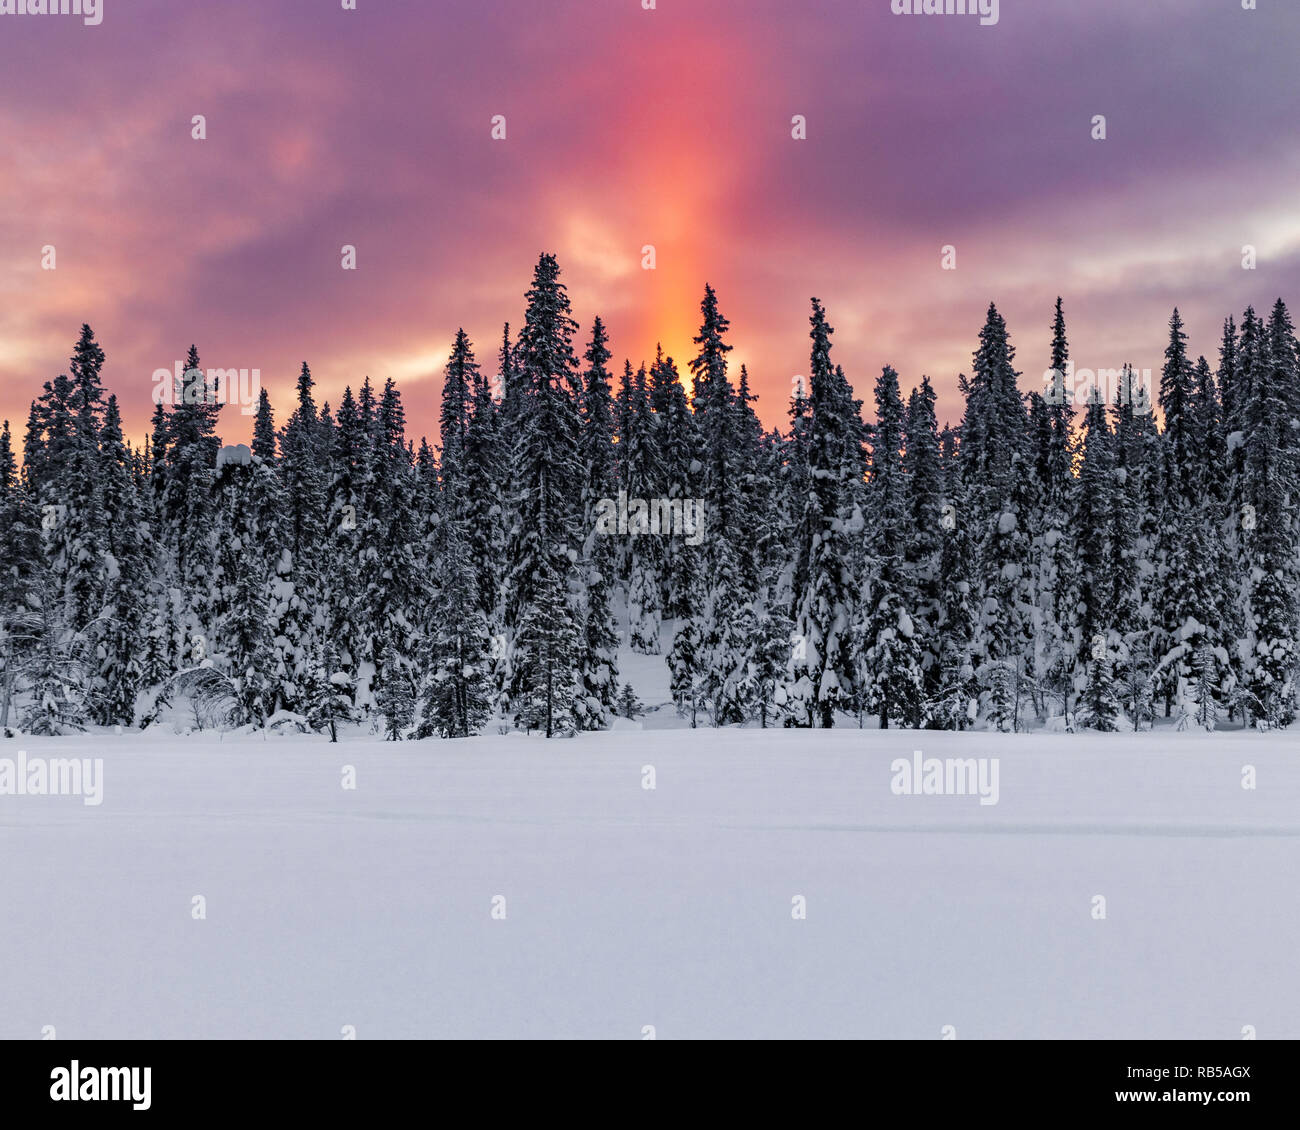 Sunrise in northern Sweden during a cold winter morning. With the first light of the year passing above the horizon creating a sunray over the trees. - Stock Image